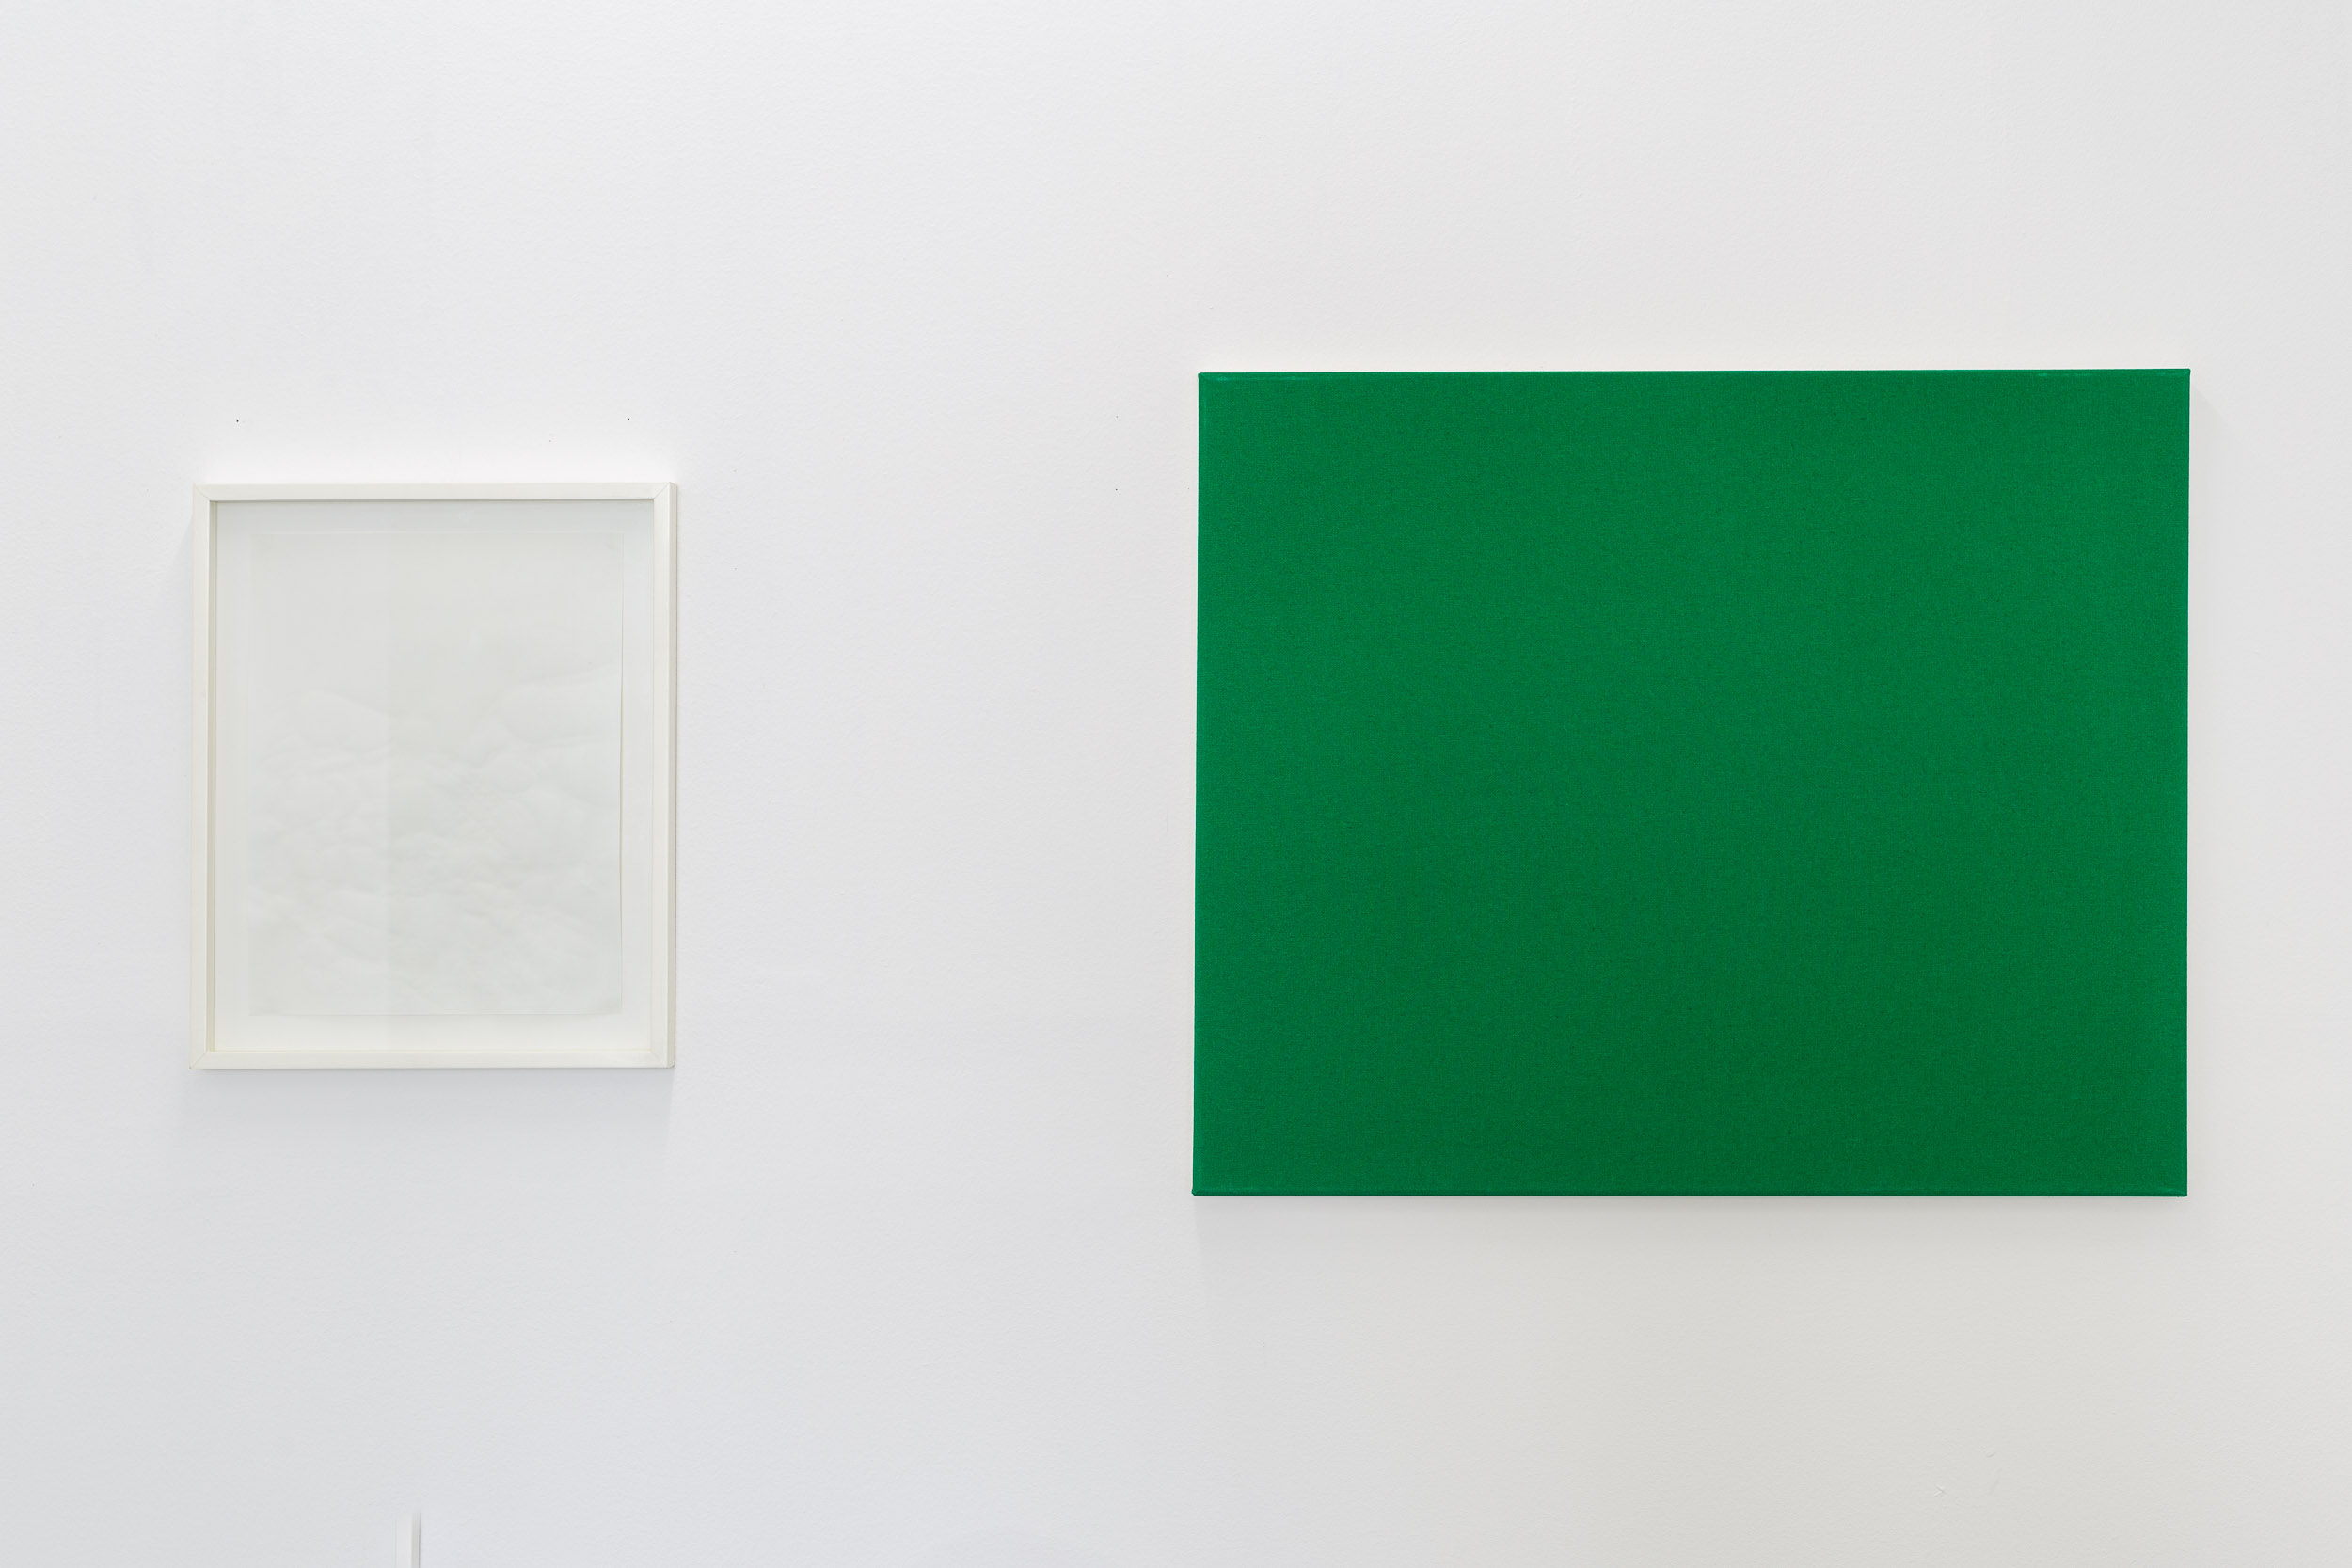 Left: Bruno Jakob,  Philosophy Escaped (Invisible Painting), The Mutilated Meaning , 1999, Zurich snow water on primed green canvas, 50 x 60 cm Right: Bruno Jakob,  Philosophy Escaped (Invisible Painting), The Mutilated Meaning , 1999, Zurich snow water on primed green canvas, 50 x 60 cm   Photo: Kilian Bannwart